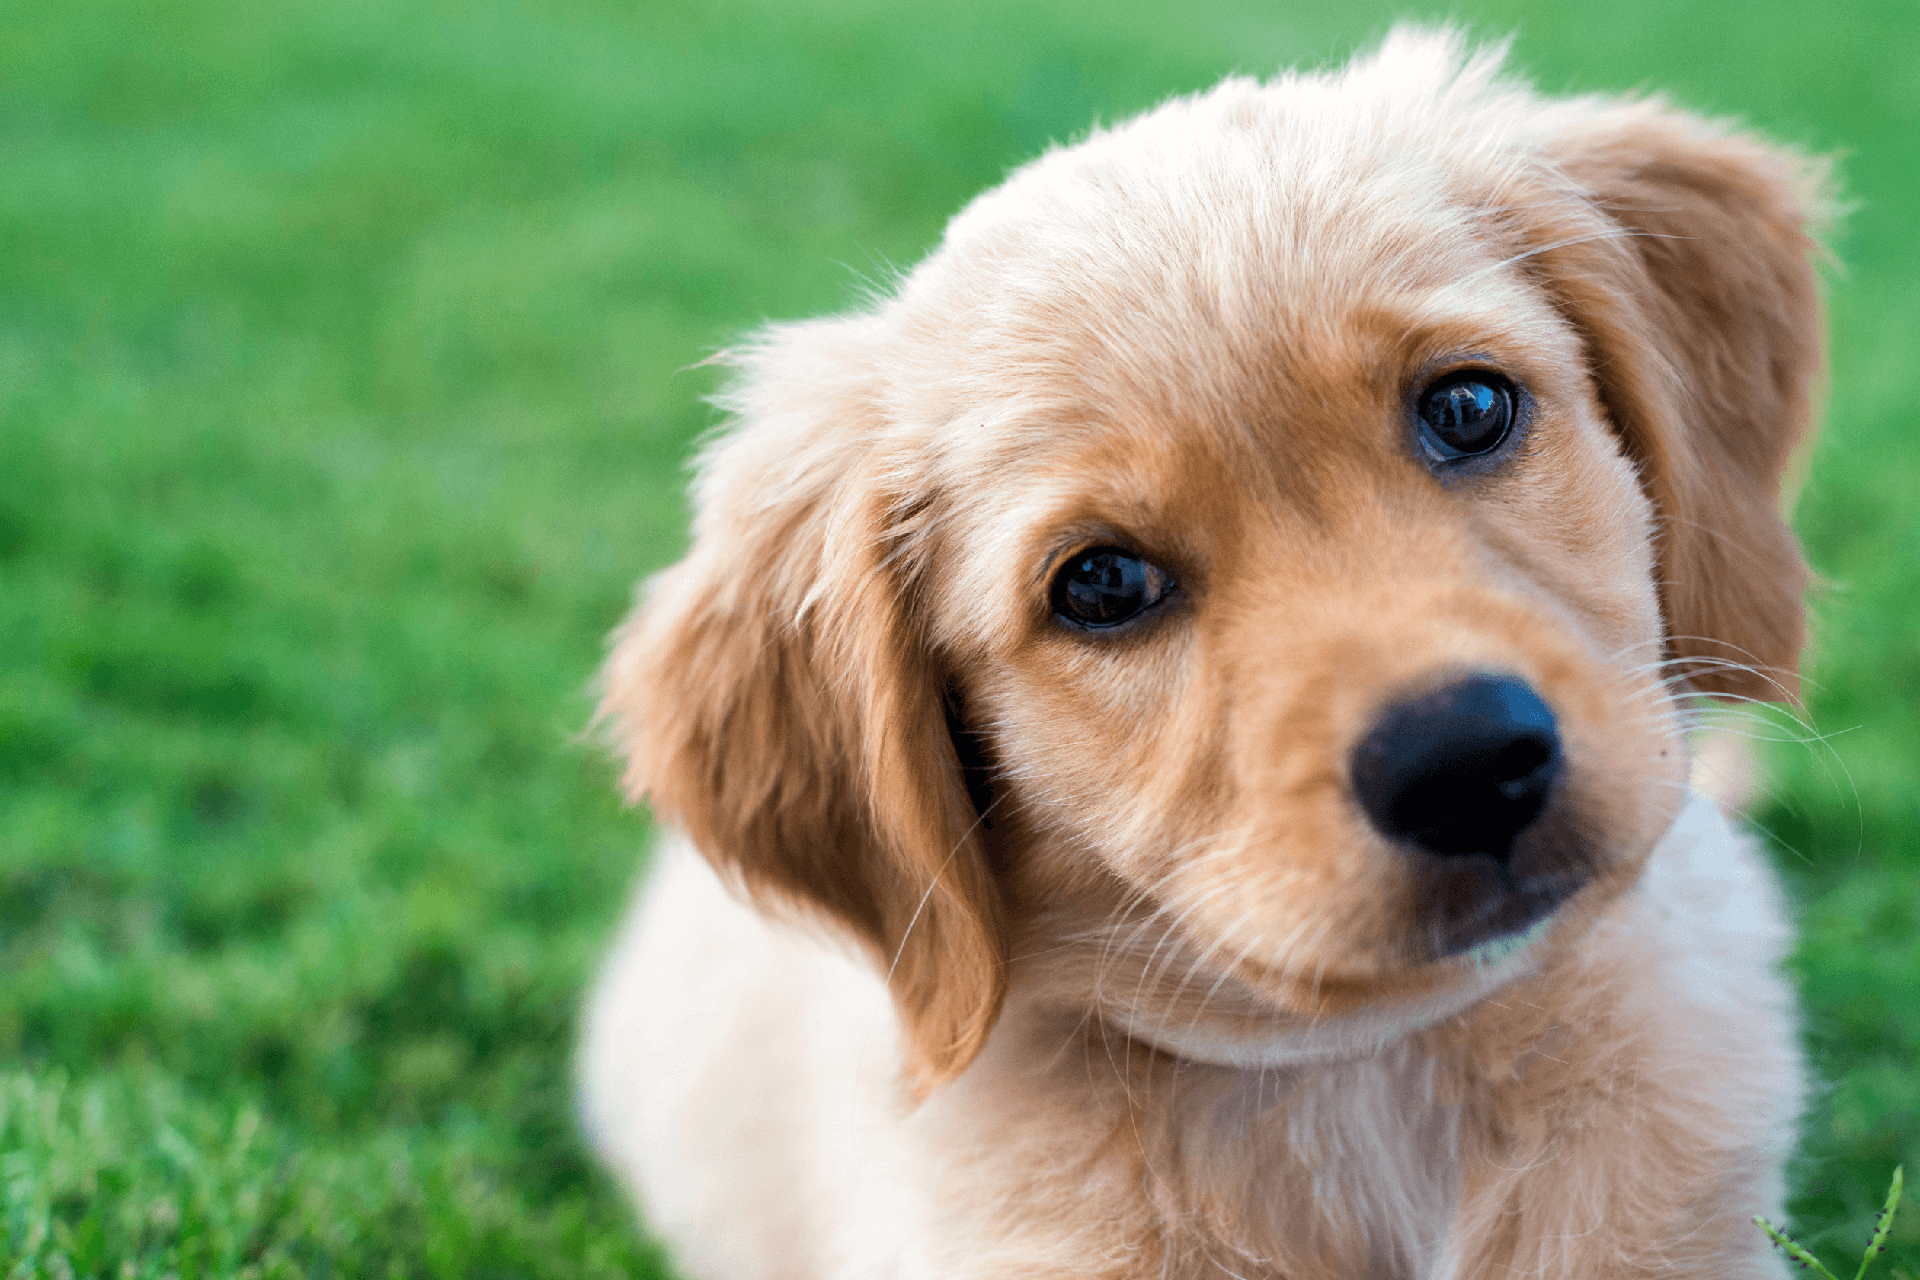 Providing care for your pet for life